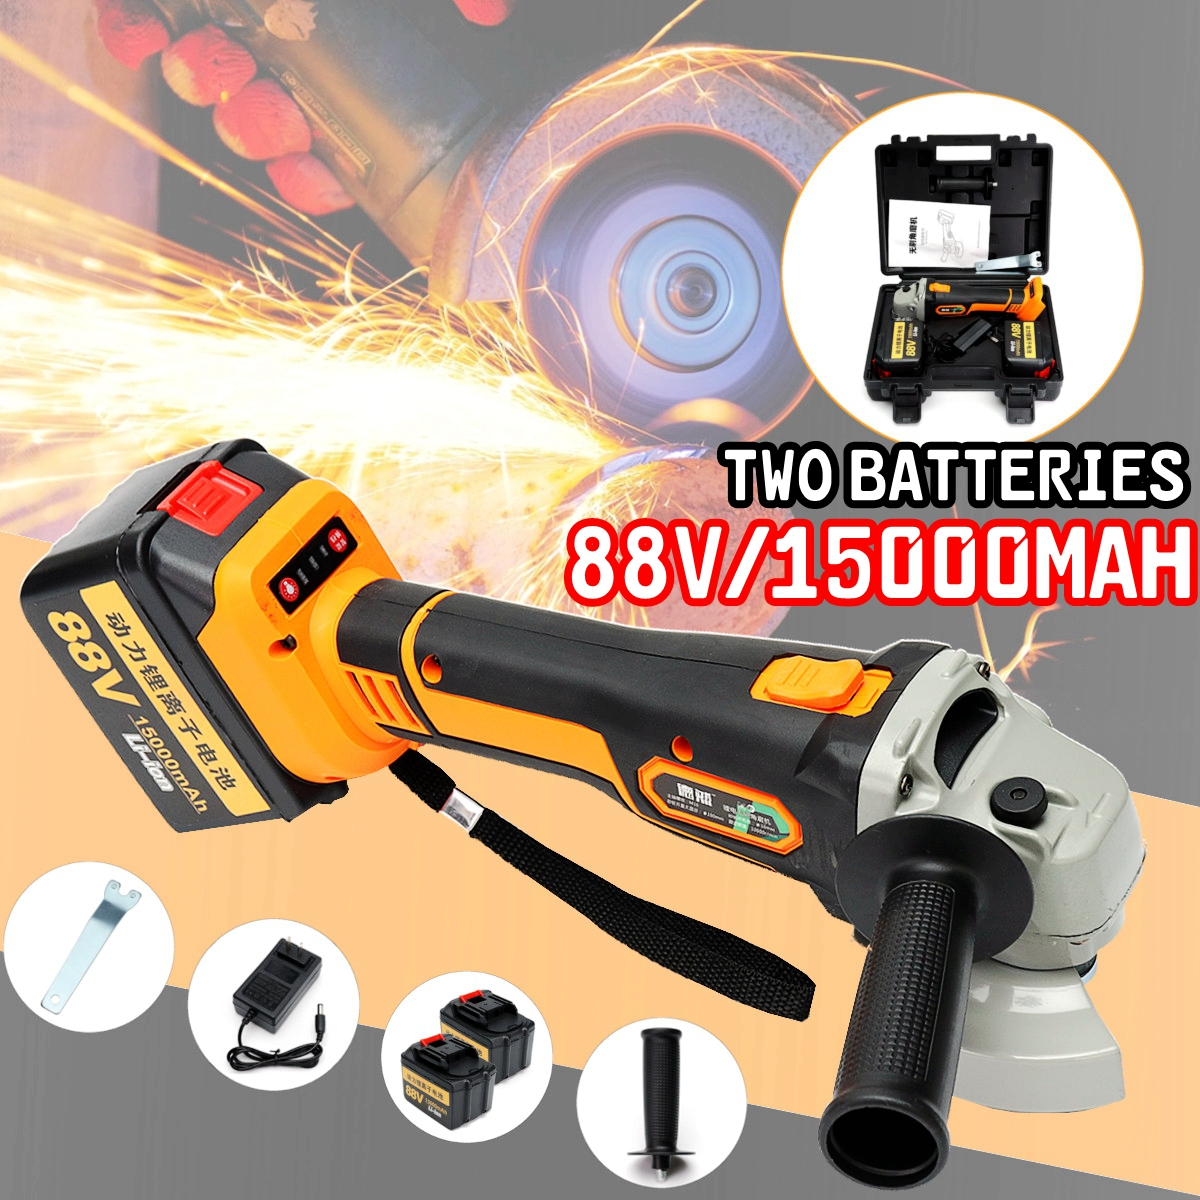 88Vf 15000mAh Electric Angle Grinder Cordless Polisher Polishing Machine Cutting Tool fast shipping at3139 180 polisher multifunctional a tractor serves several purposes angle grinder cutting wheel electric